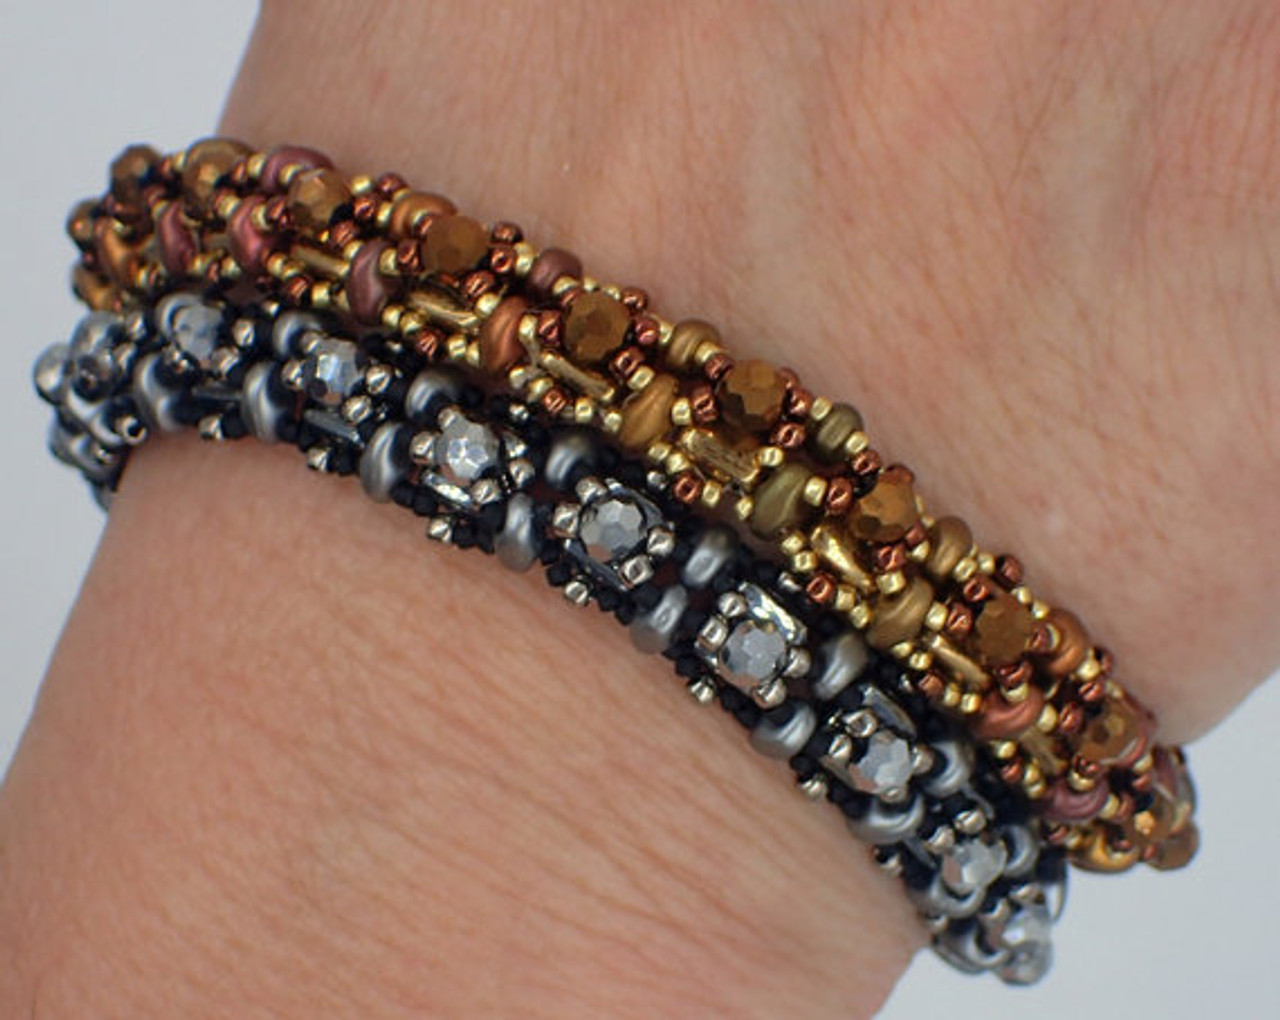 Cobblestone Bangle Bracelet PRINTED Tutorial - Mailed to your home